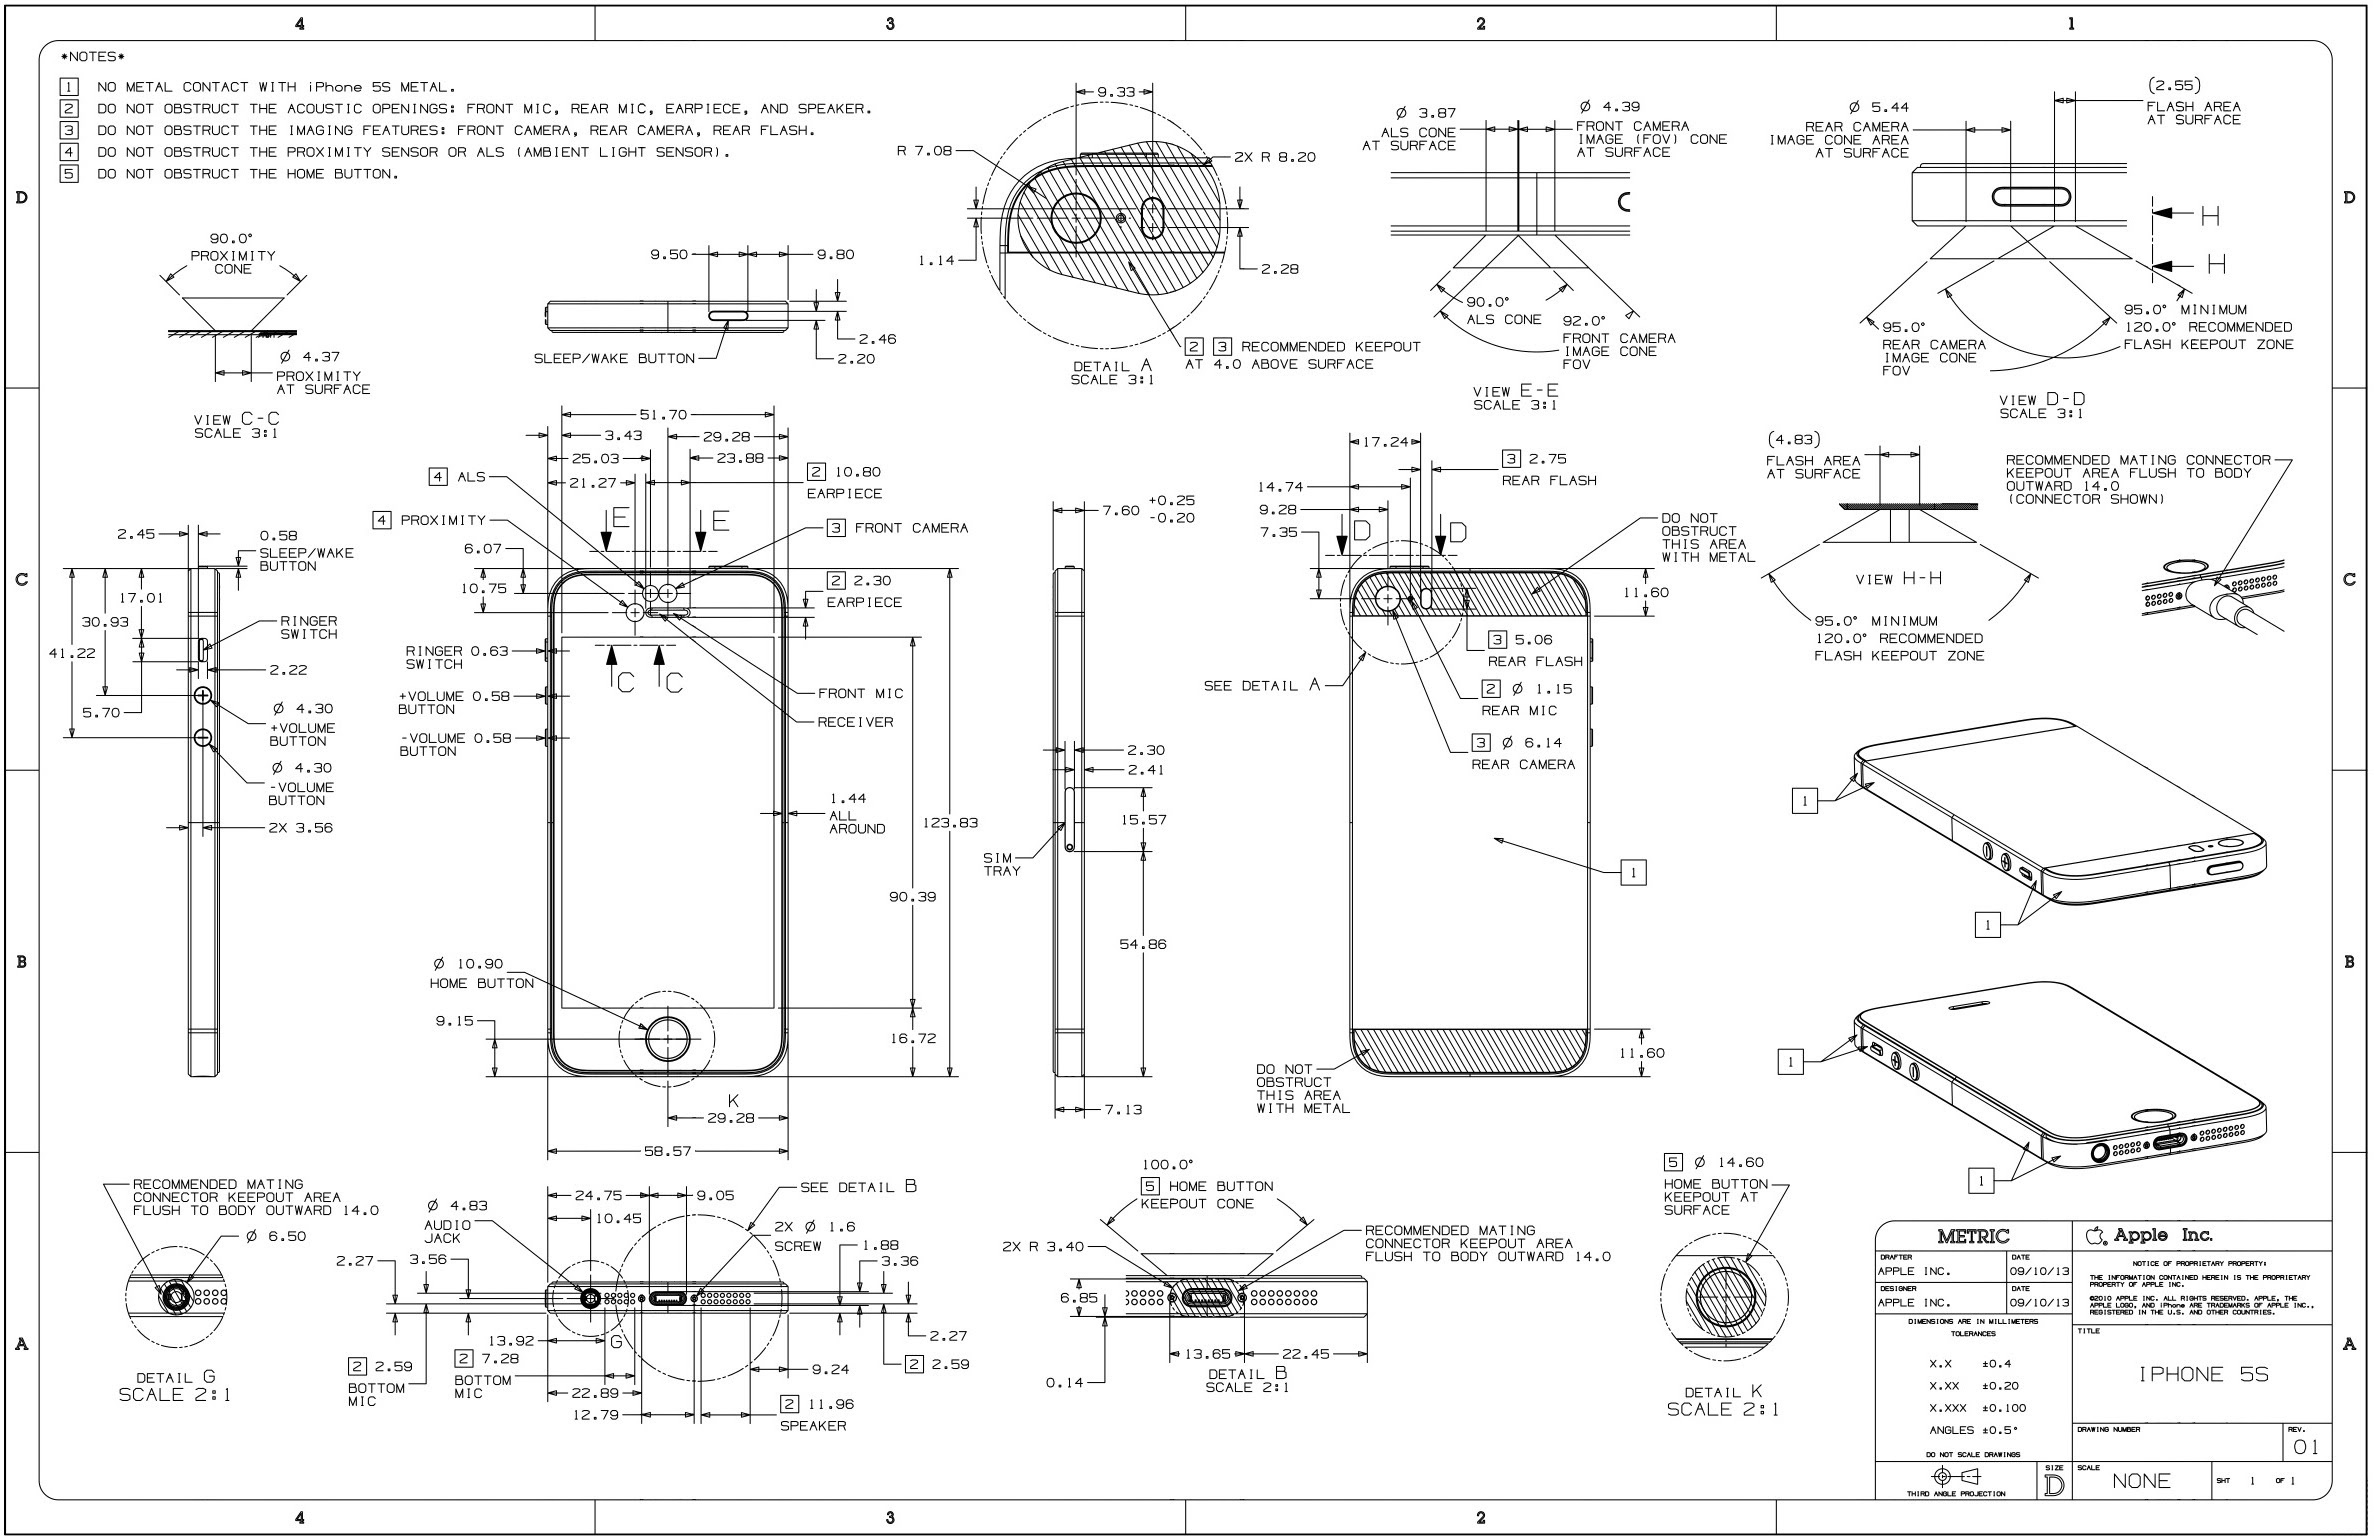 Iphone 3 Circuit Diagram 1991 Civic Wiring Diagram As Well 1998 Ford Begeboy Wiring Diagram Source